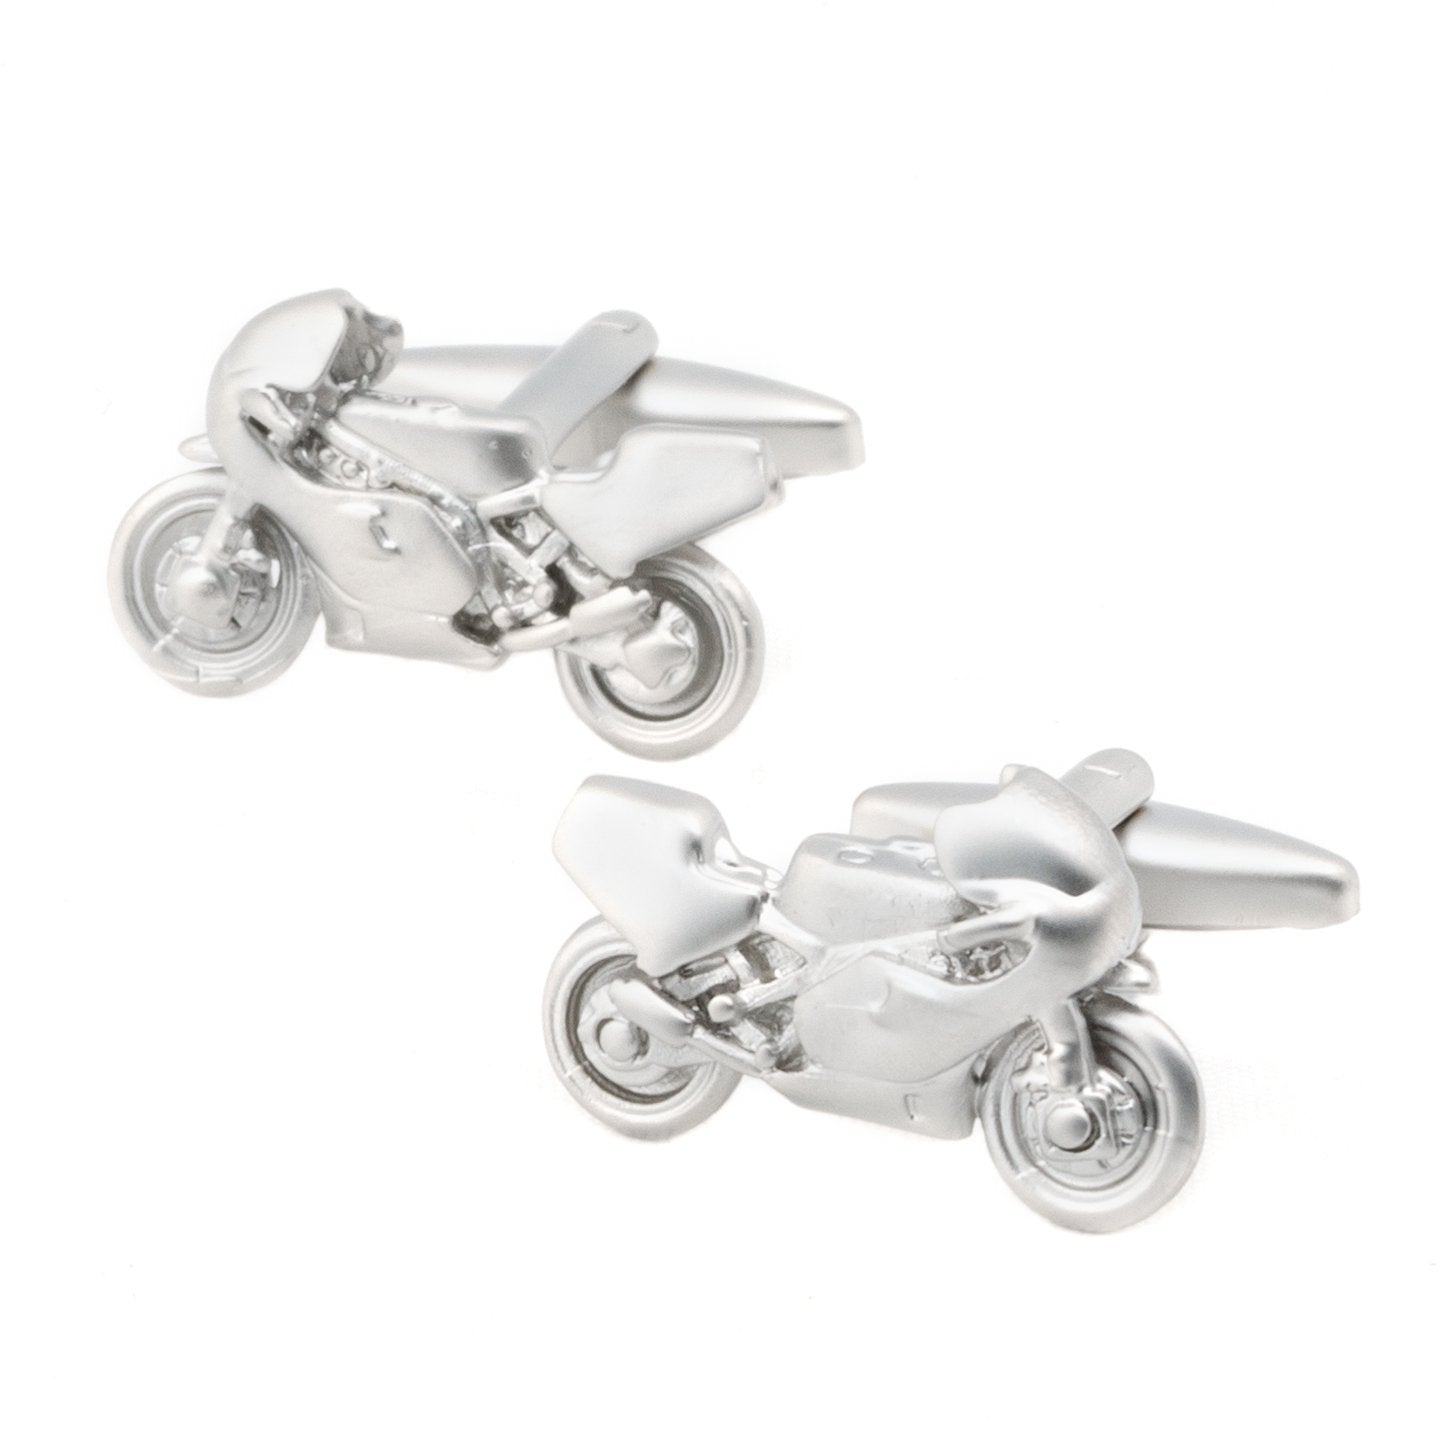 Sports Motorbike Cufflinks Novelty Cufflinks Clinks Australia Sports Motorbike Cufflinks